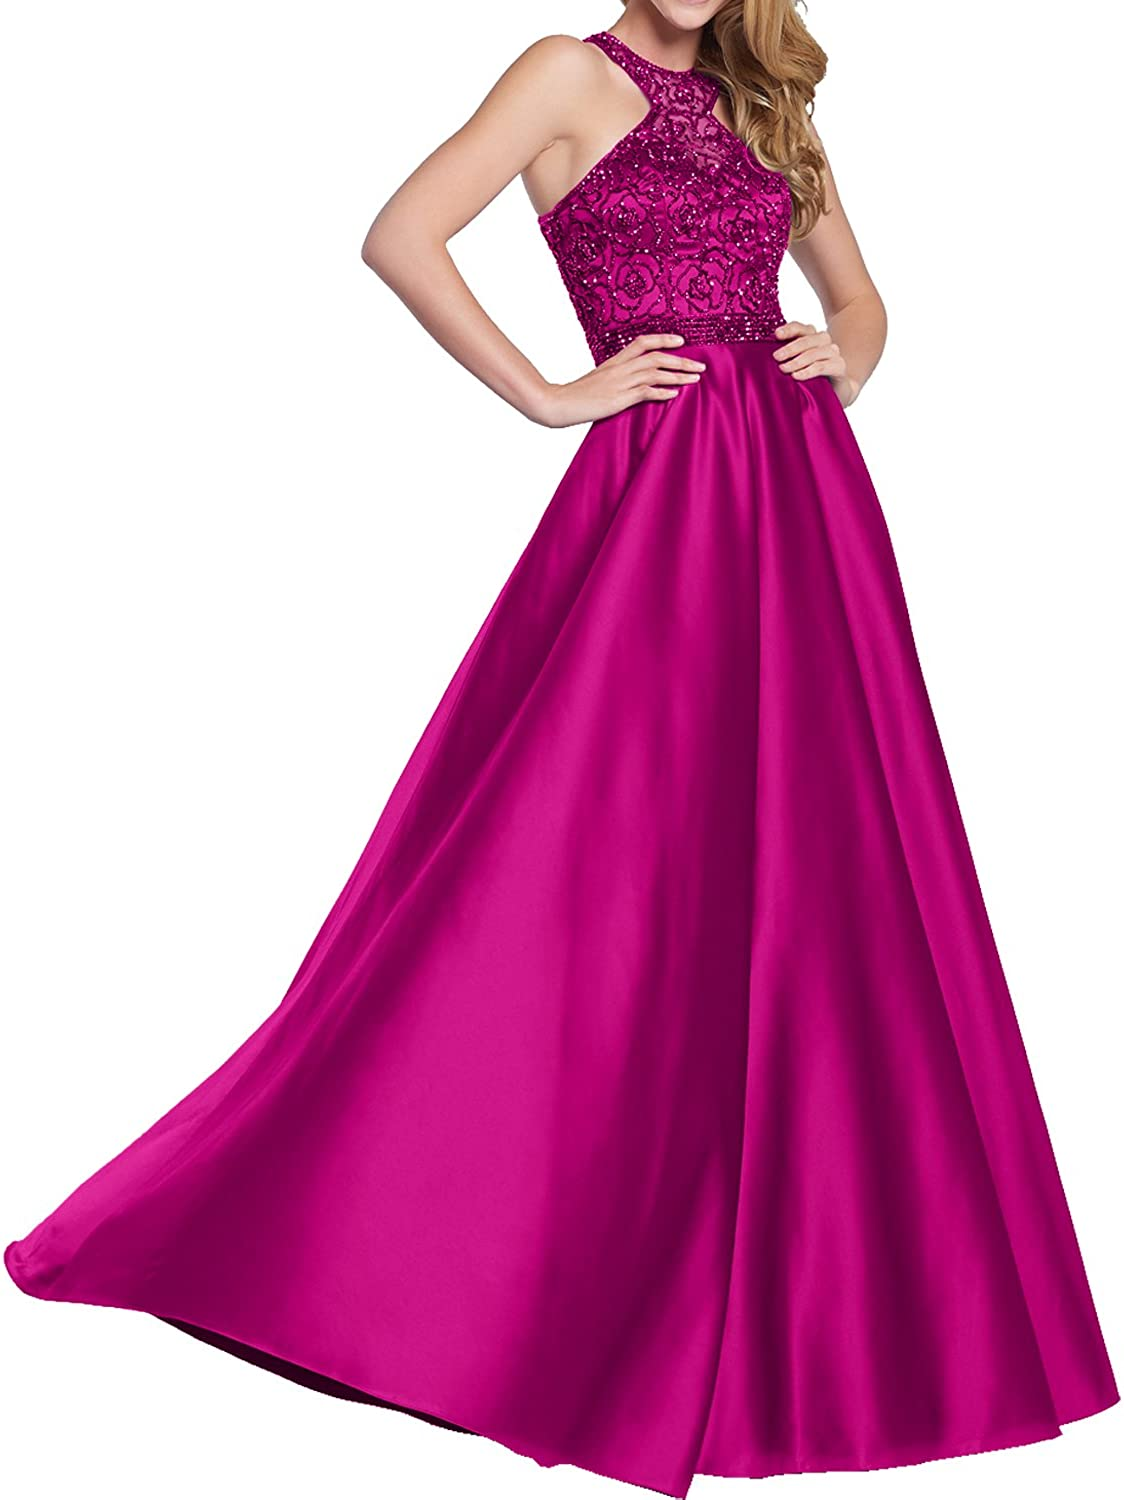 DressyMe Women's Exquisite Beaded Evening Dresses Long Party Gown Halter Racerback